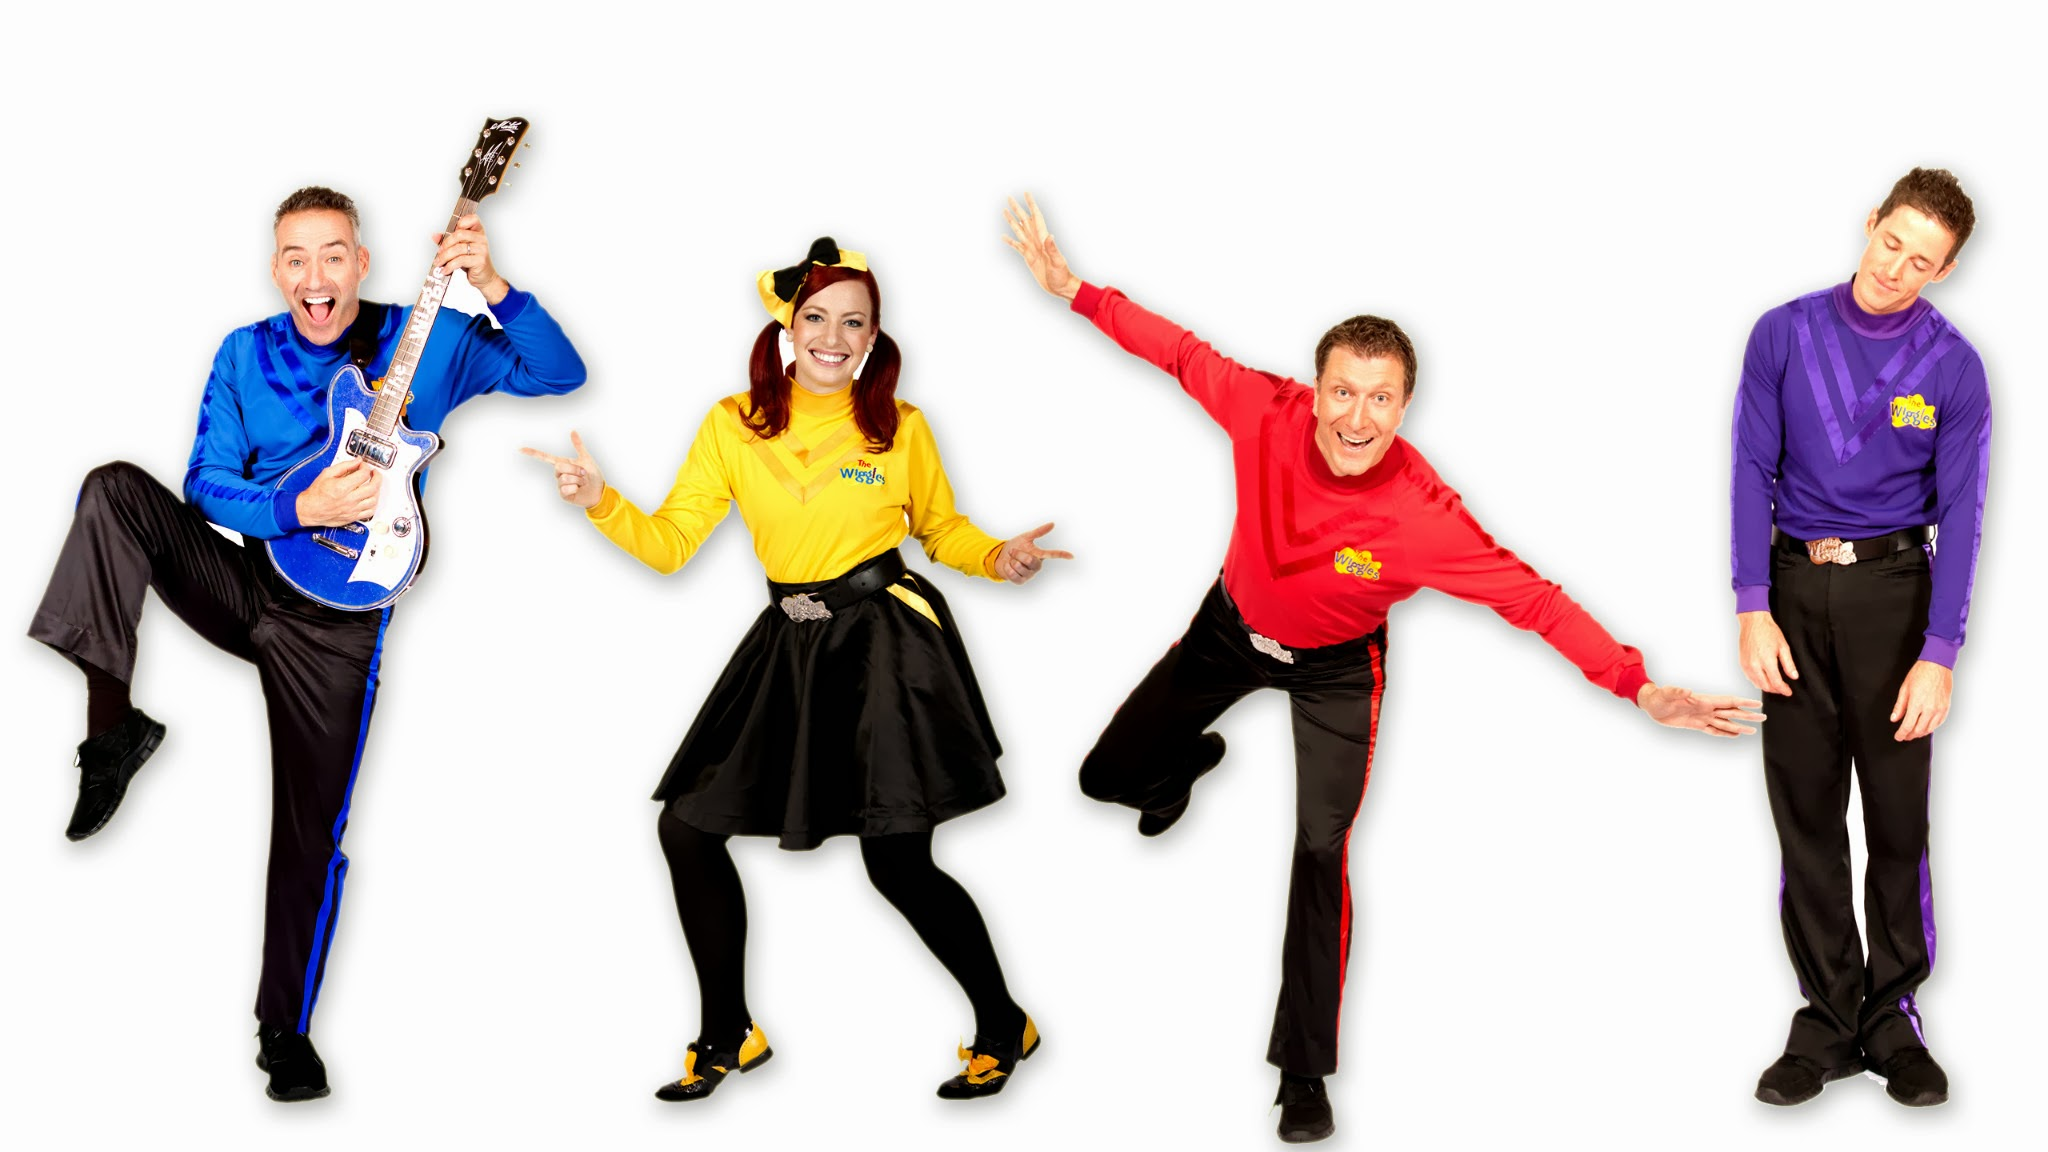 Wallpapers For The Wiggles Wallpaper | www.showallpapers.com